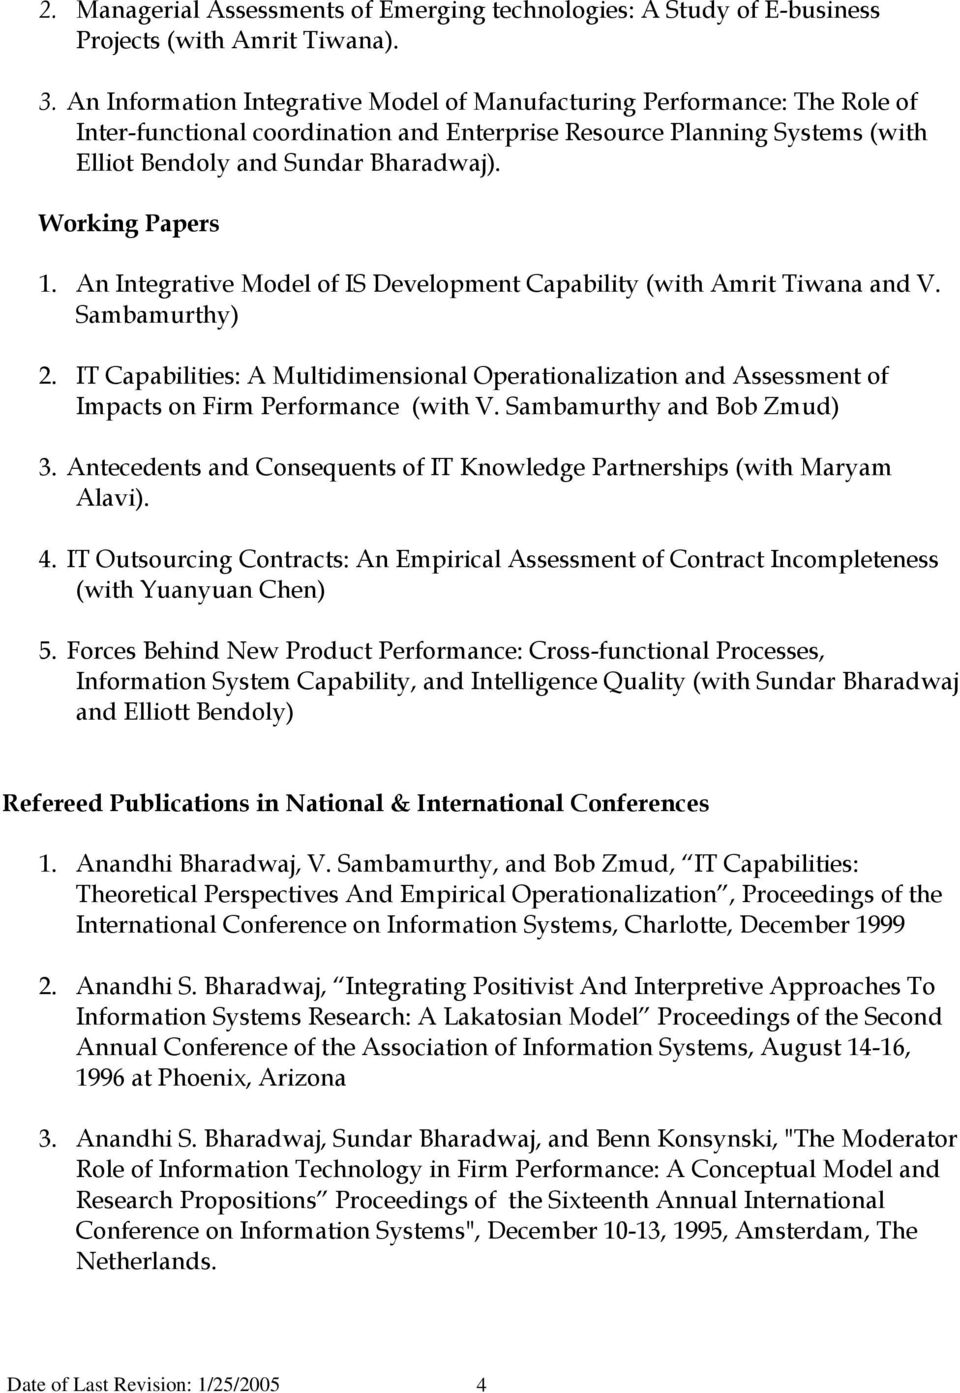 Working Papers 1. An Integrative Model of IS Development Capability (with Amrit Tiwana and V. Sambamurthy) 2.